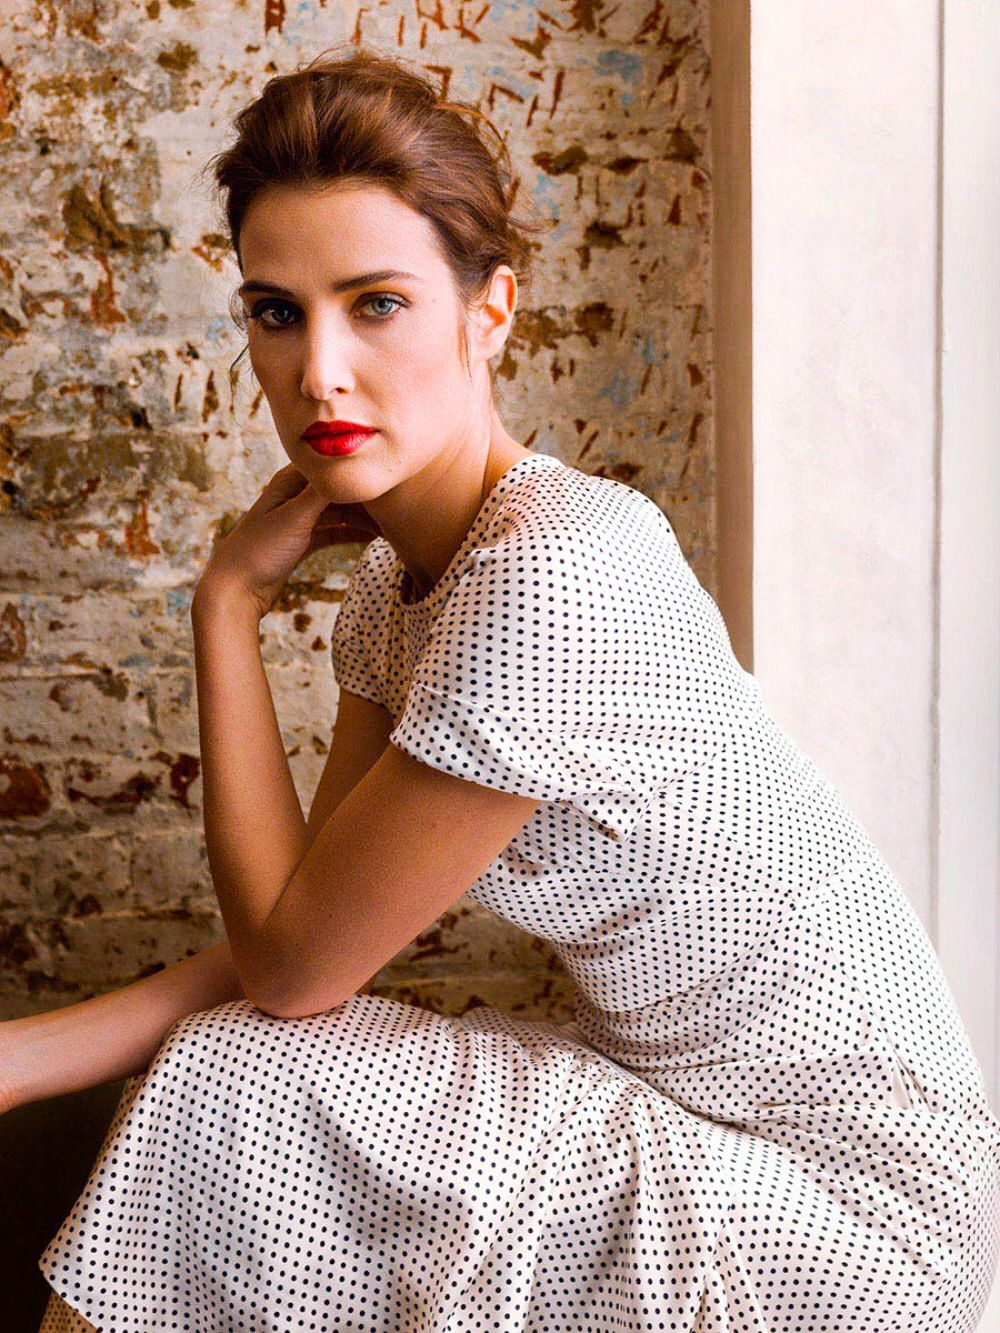 Pin By Beatriz Neves On Cobie Maria Hill Smulders Actresses Canadian Actresses Celebrities